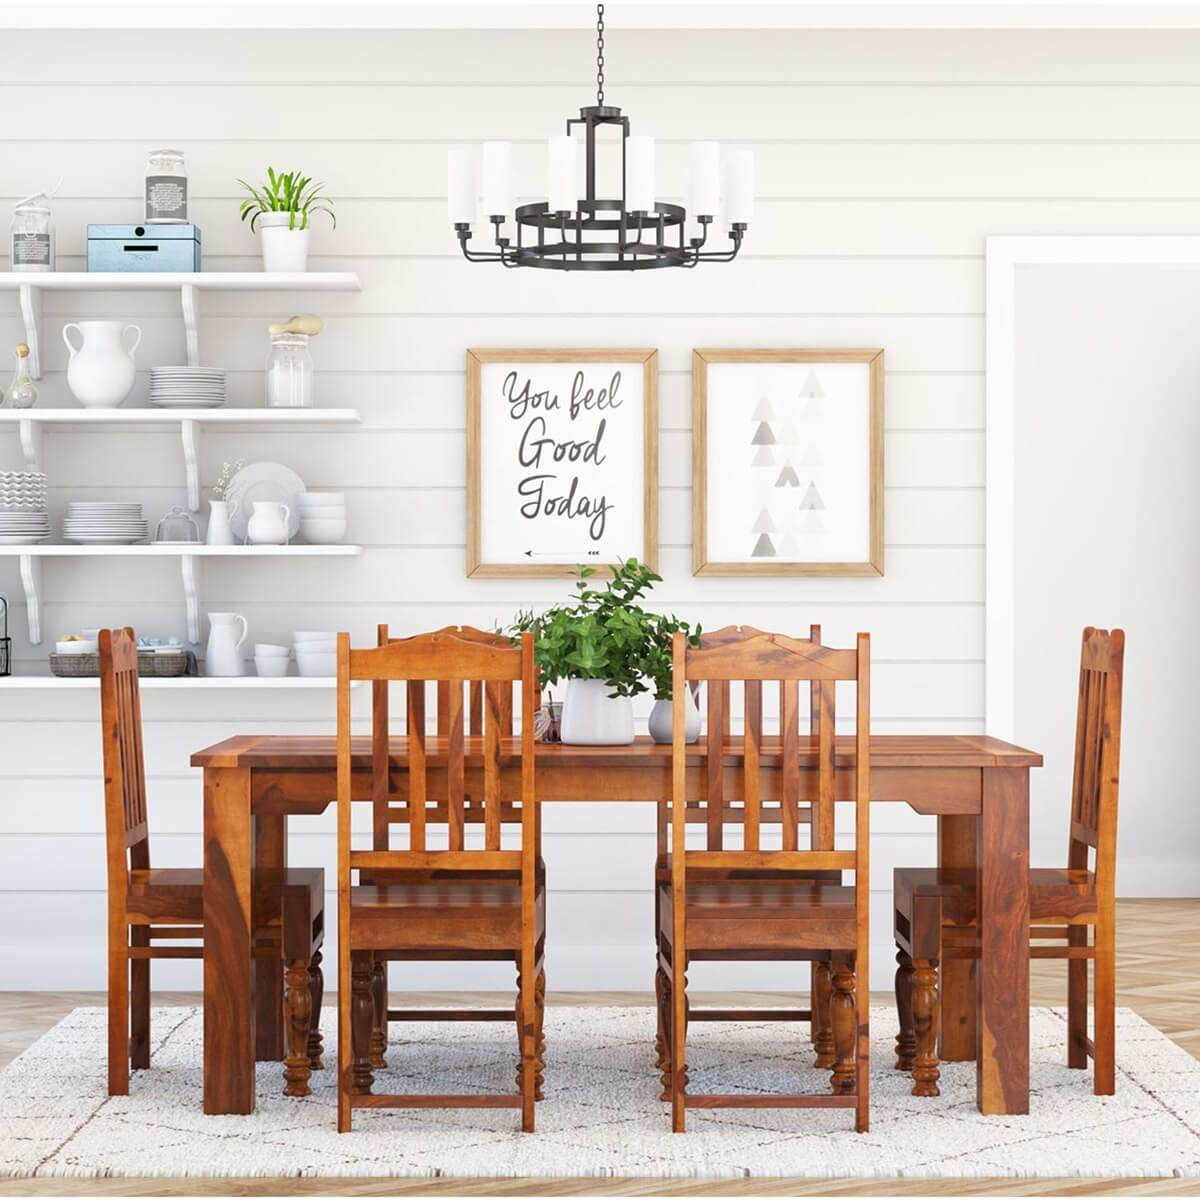 Rustic Wood Chairs Rustic Solid Wood Dallas Dining Table With Chairs Set